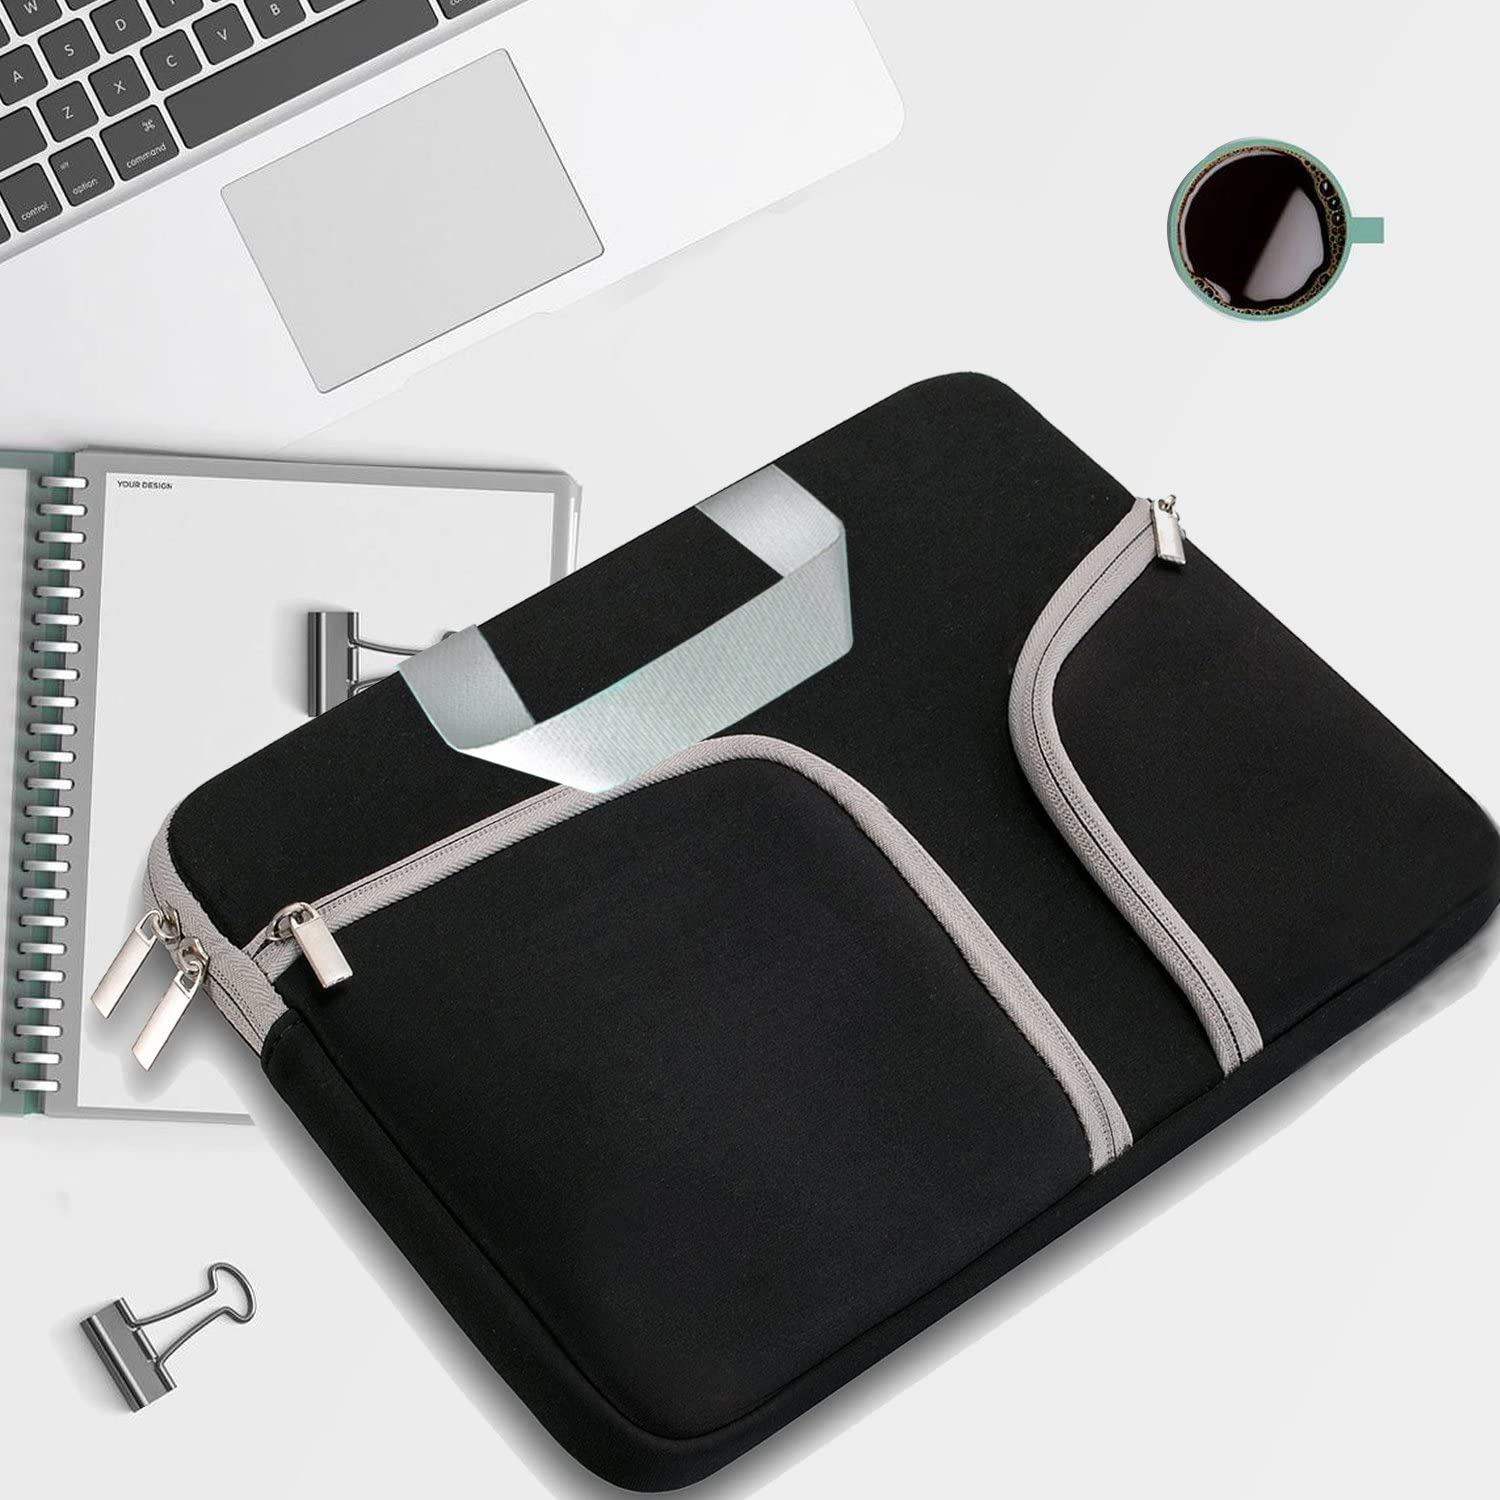 Royal Purple HESTECH 13-13.3 Neoprene Laptop Sleeve Case with Handle for 13 MacBook Air//Pro iPad Pro 12.9 Surface Book Pro3//Pro 4 Chromebook 13 Chromebook Case